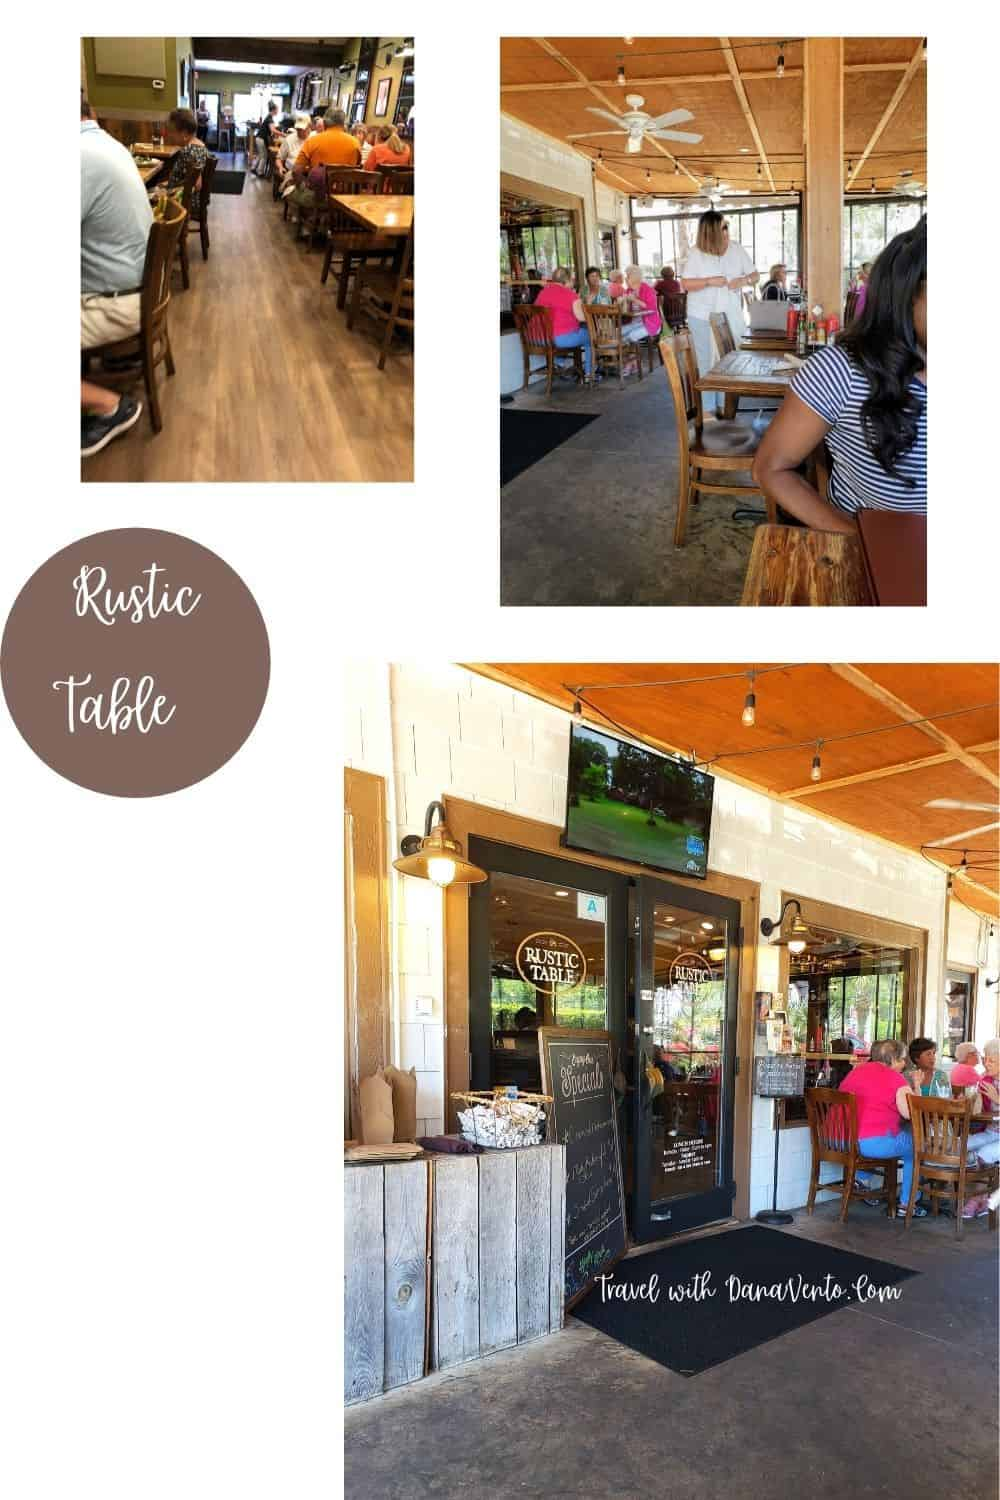 Inside and exterior of the Rustic Table on Pawleys Island